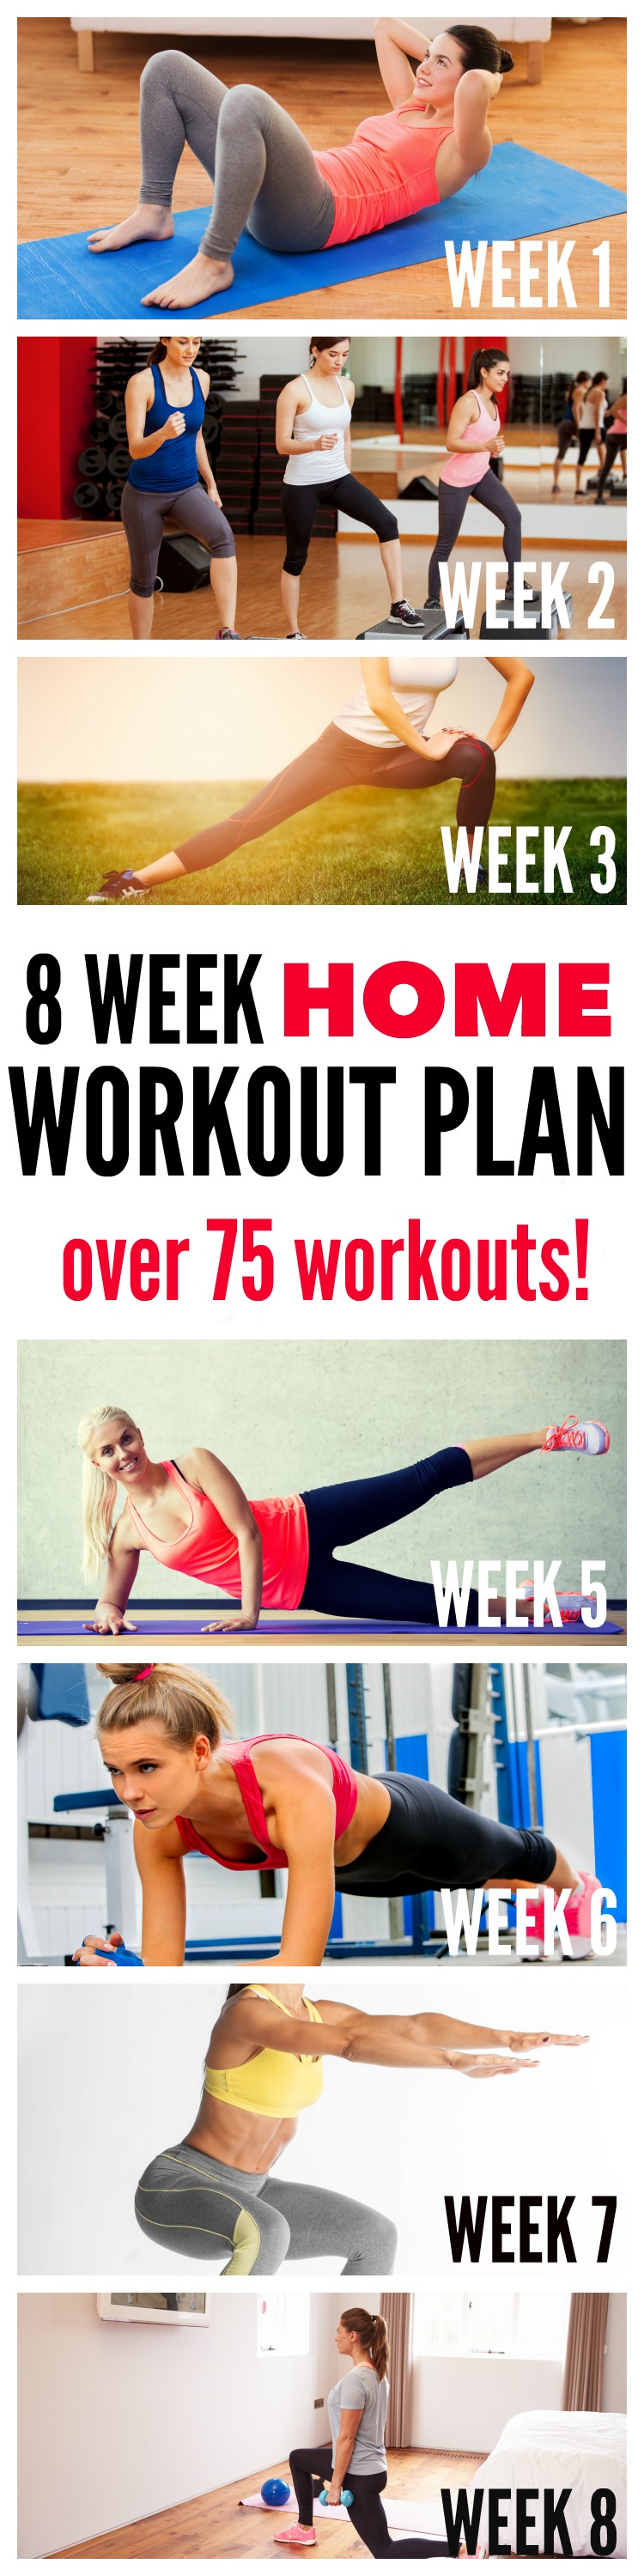 8 Week Home Workout Plan - 75 workouts